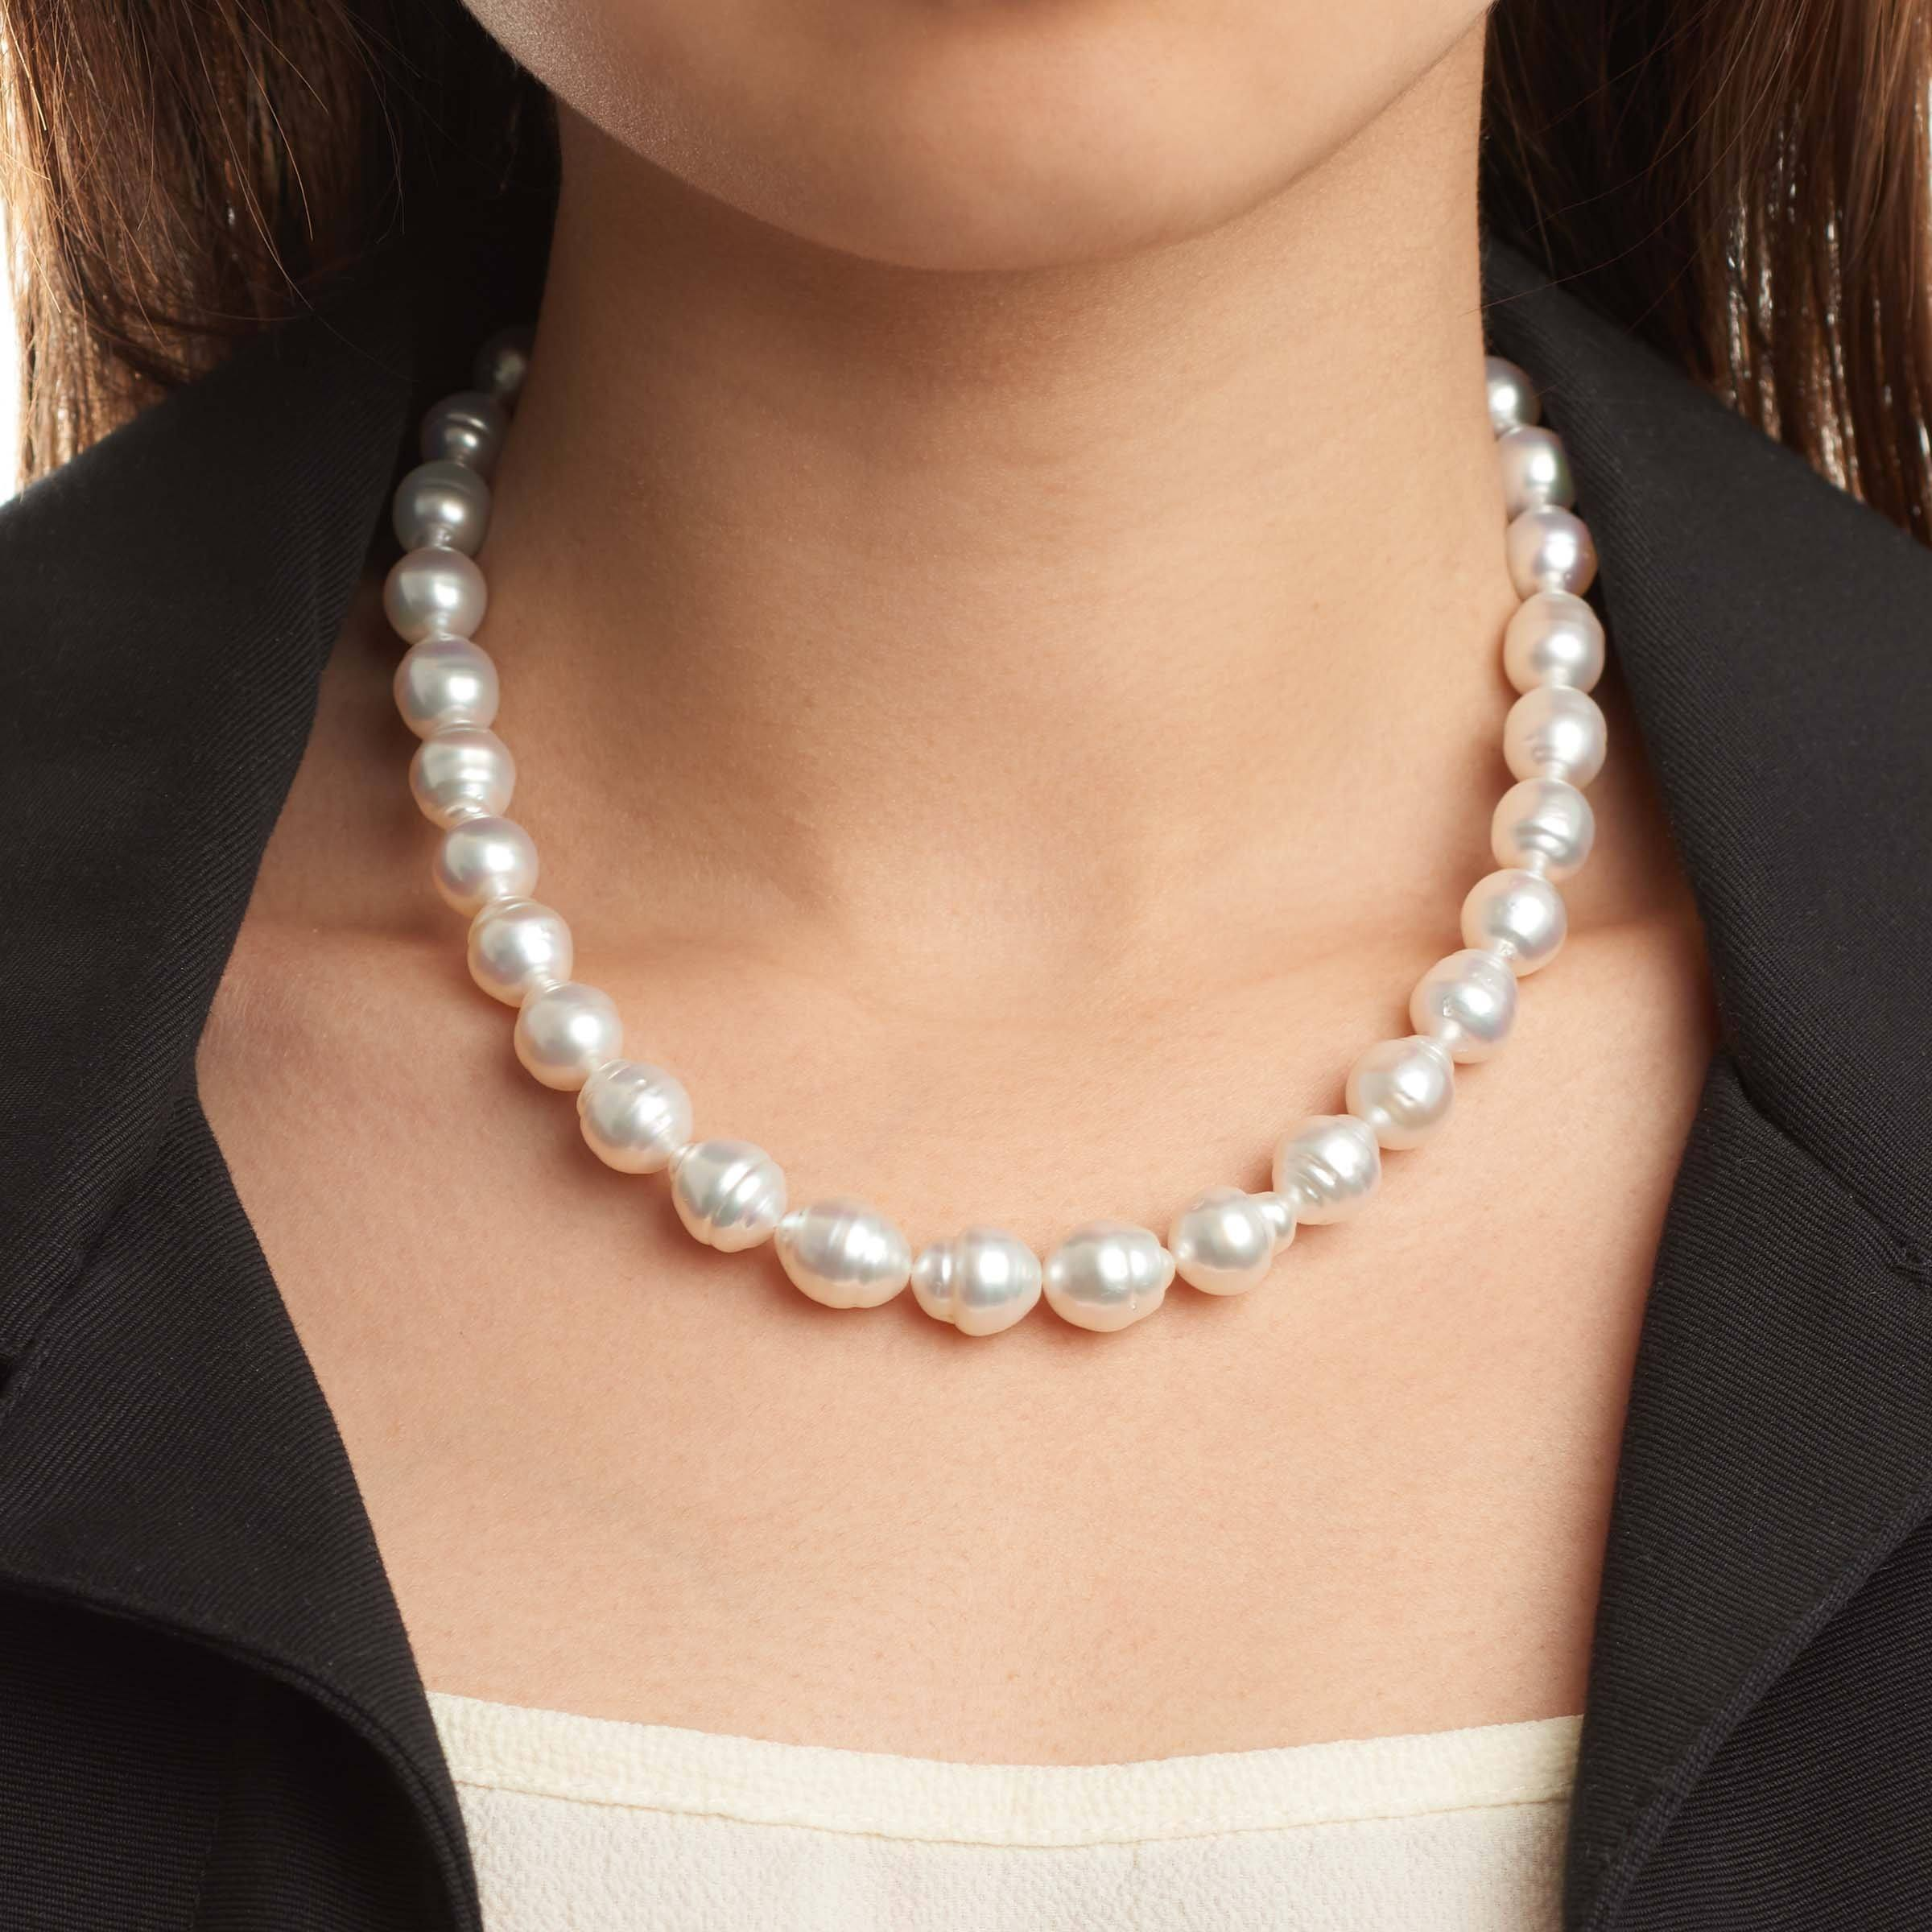 18-inch 8.7-10.9 mm AA+ Baroque White South Sea Pearl Necklace